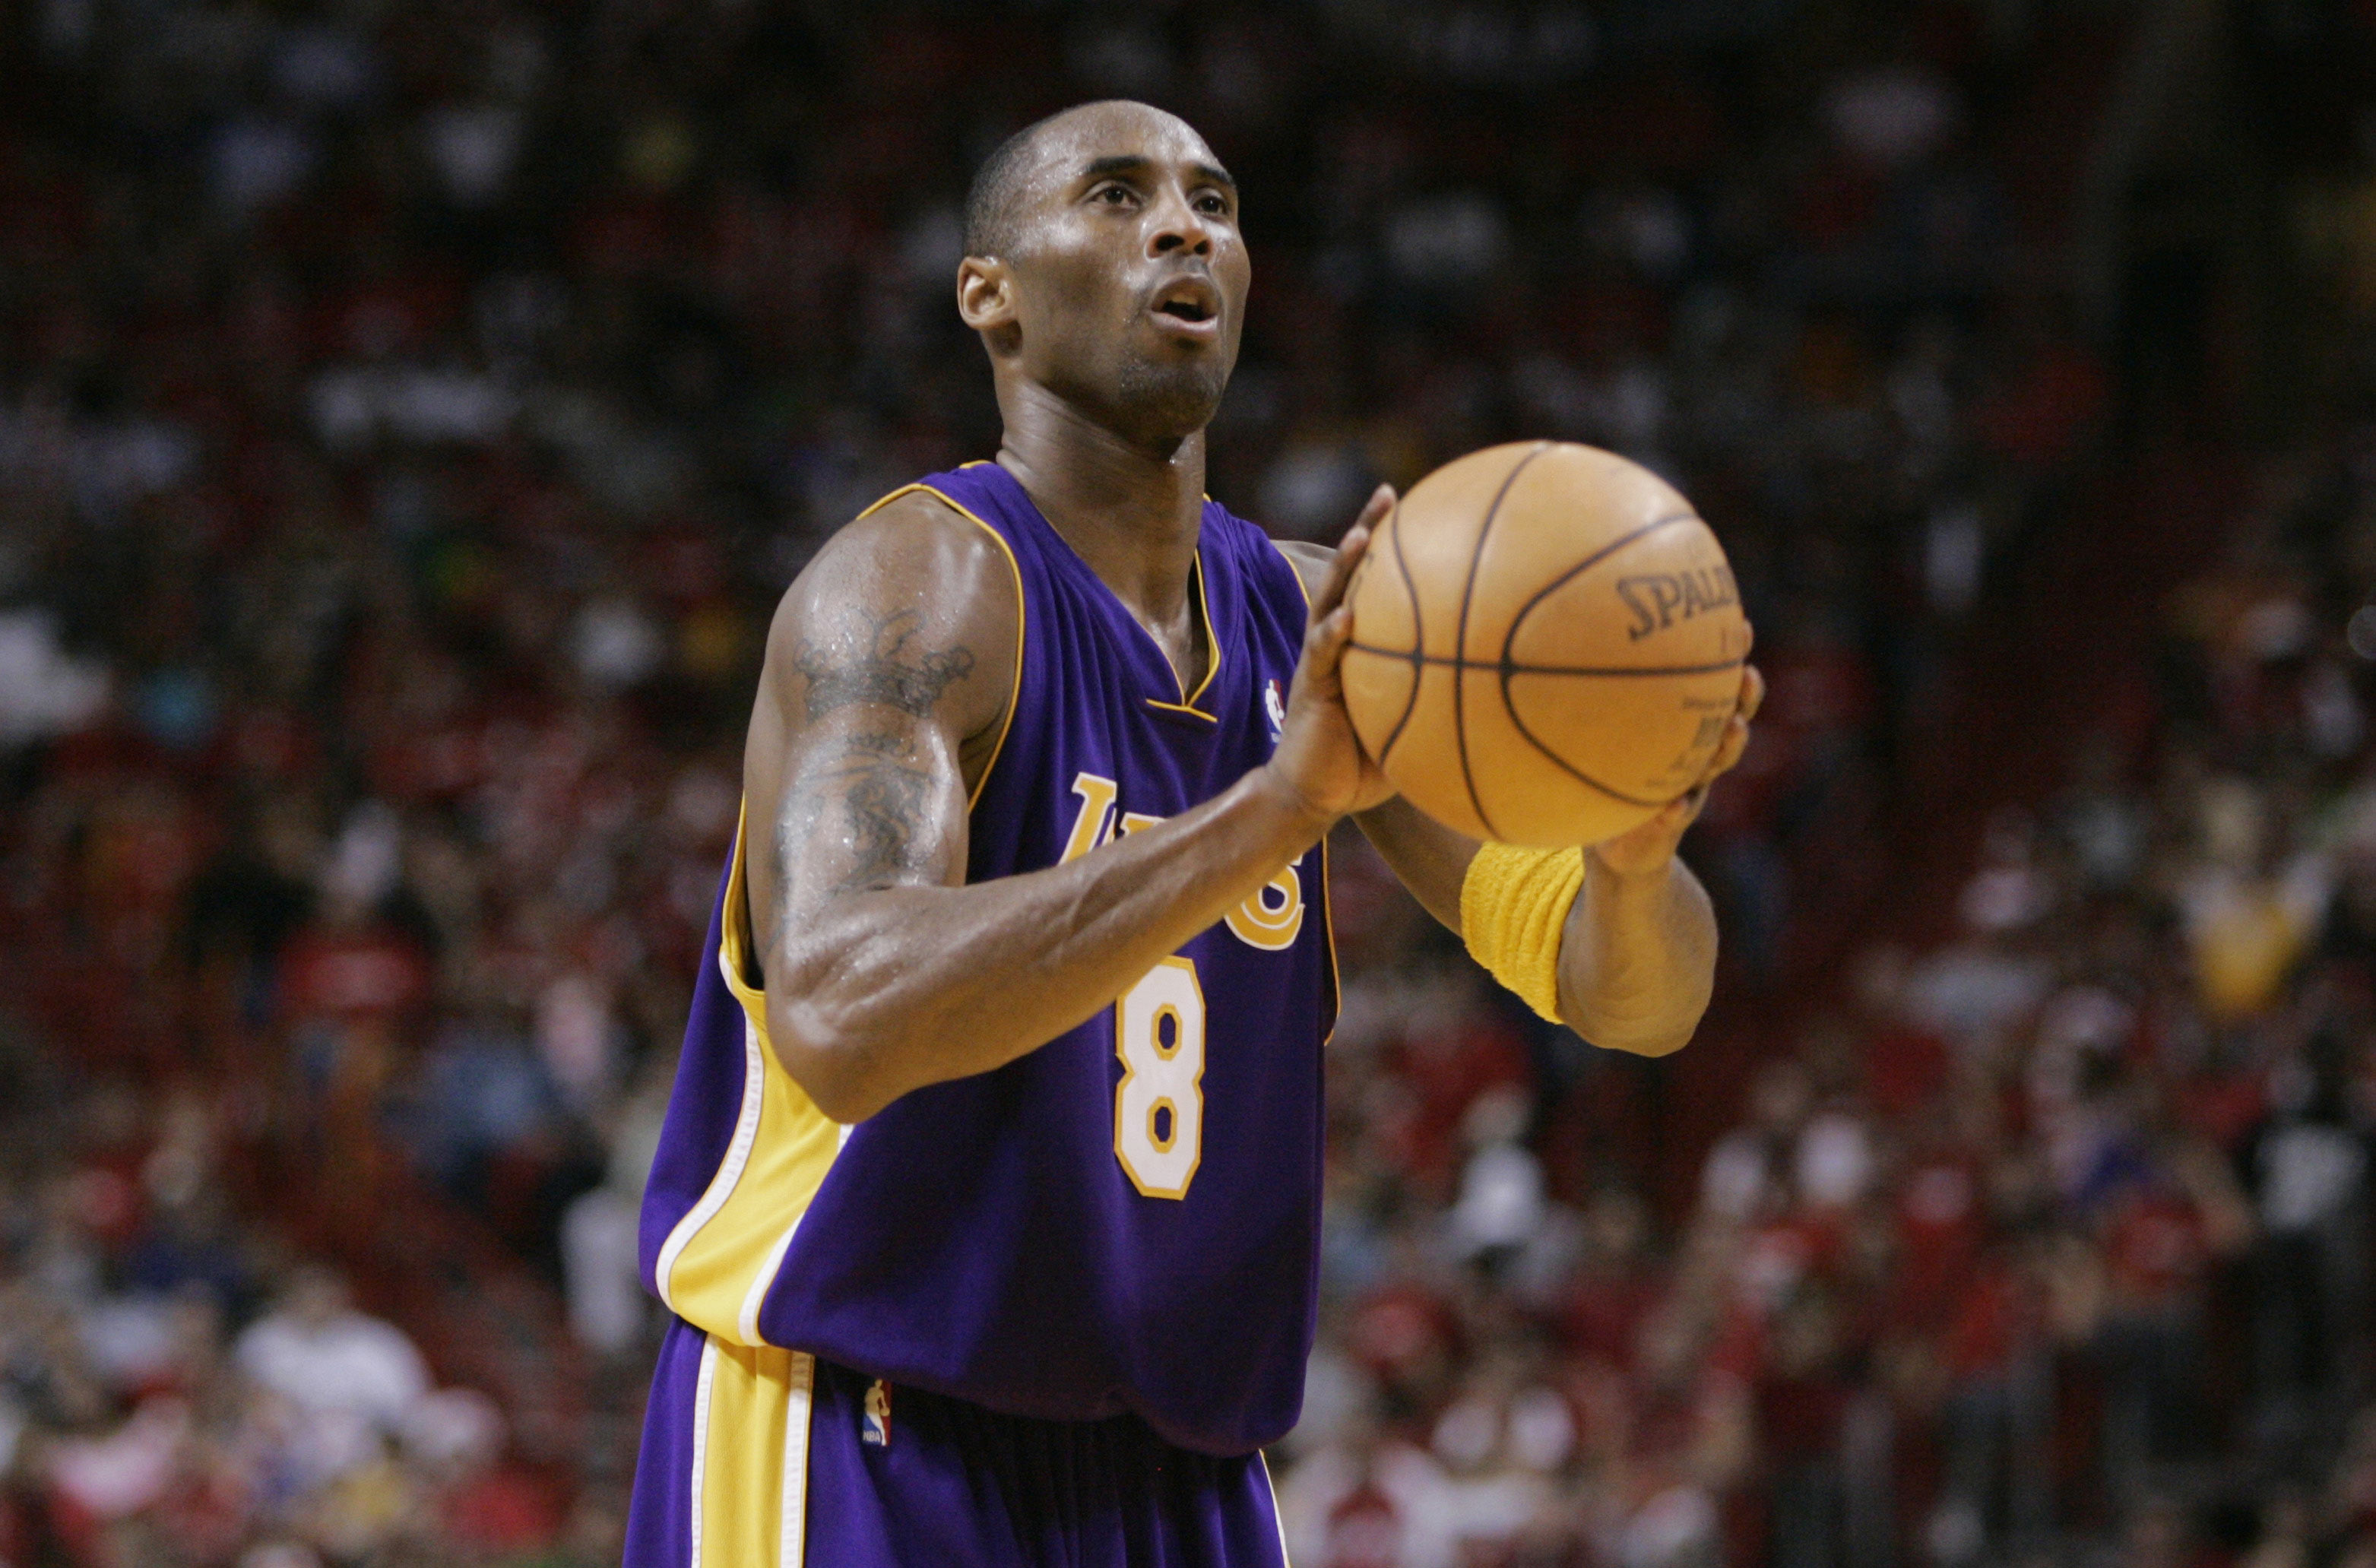 Rare Kobe Bryant rookie card sells for almost $1.8 million